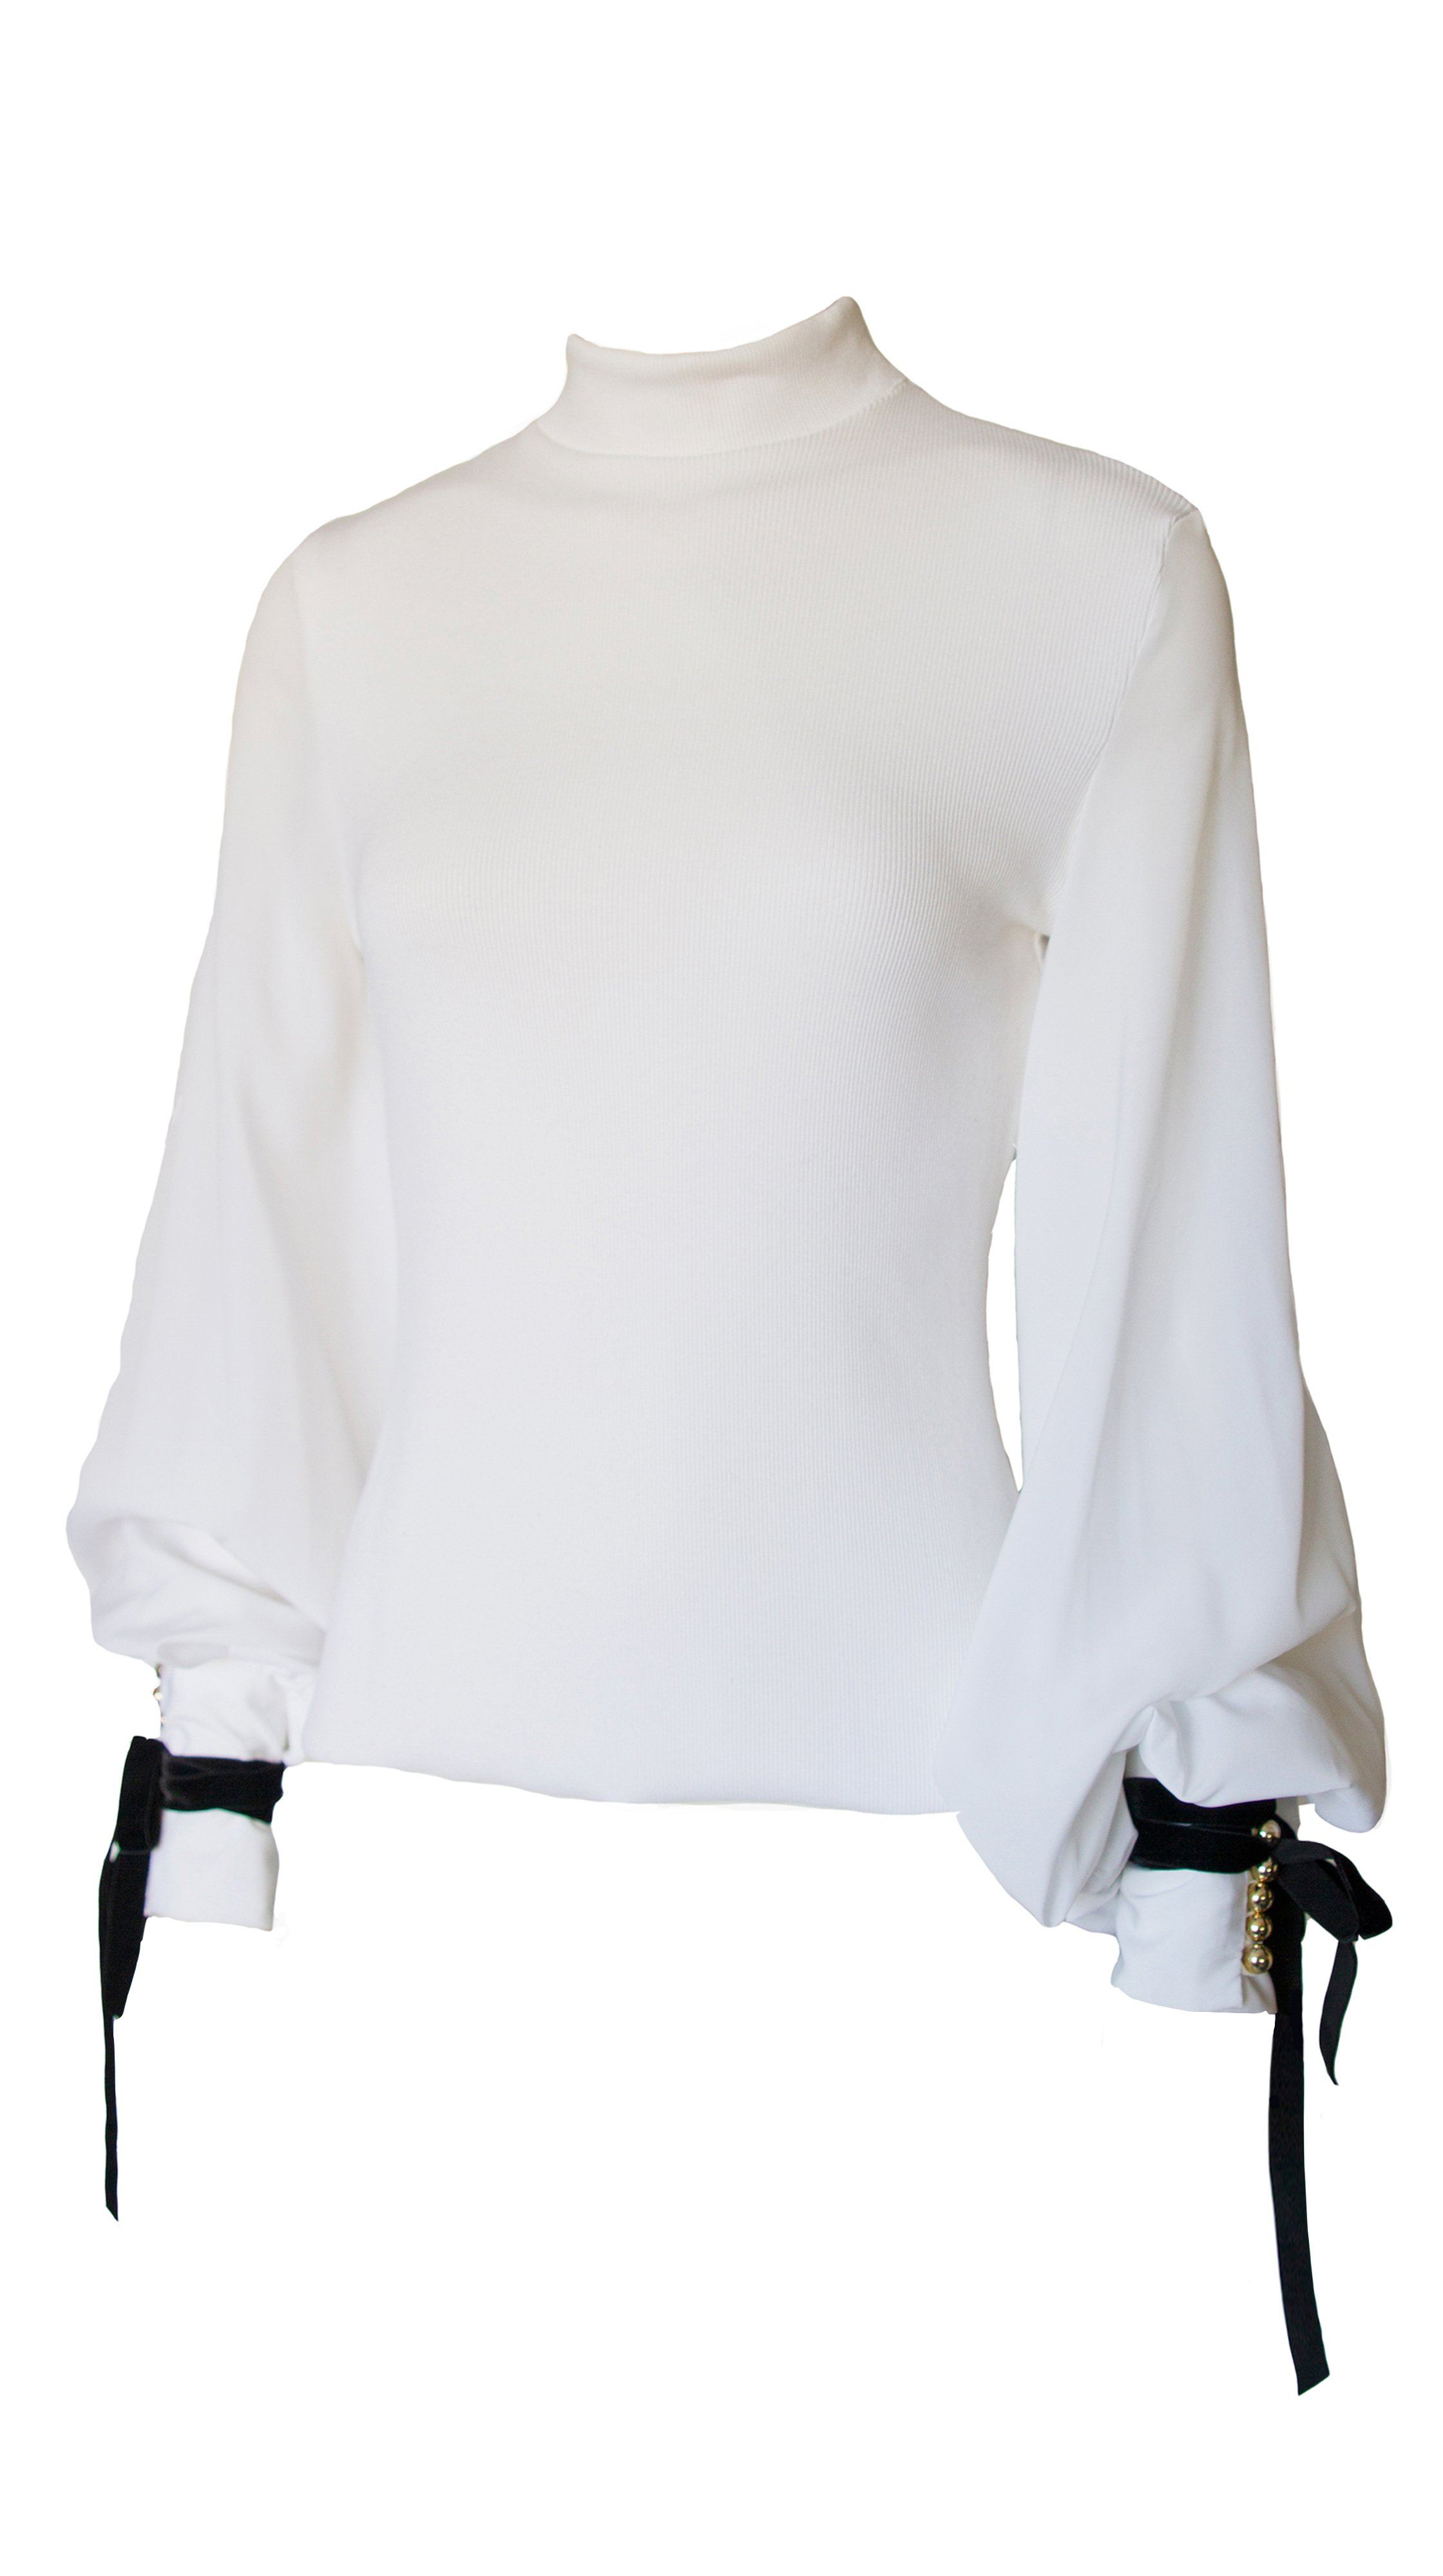 white Rib Knit Bellsleeve Blouse by Leetal Platt Made in new york | Nineteenth Amendment